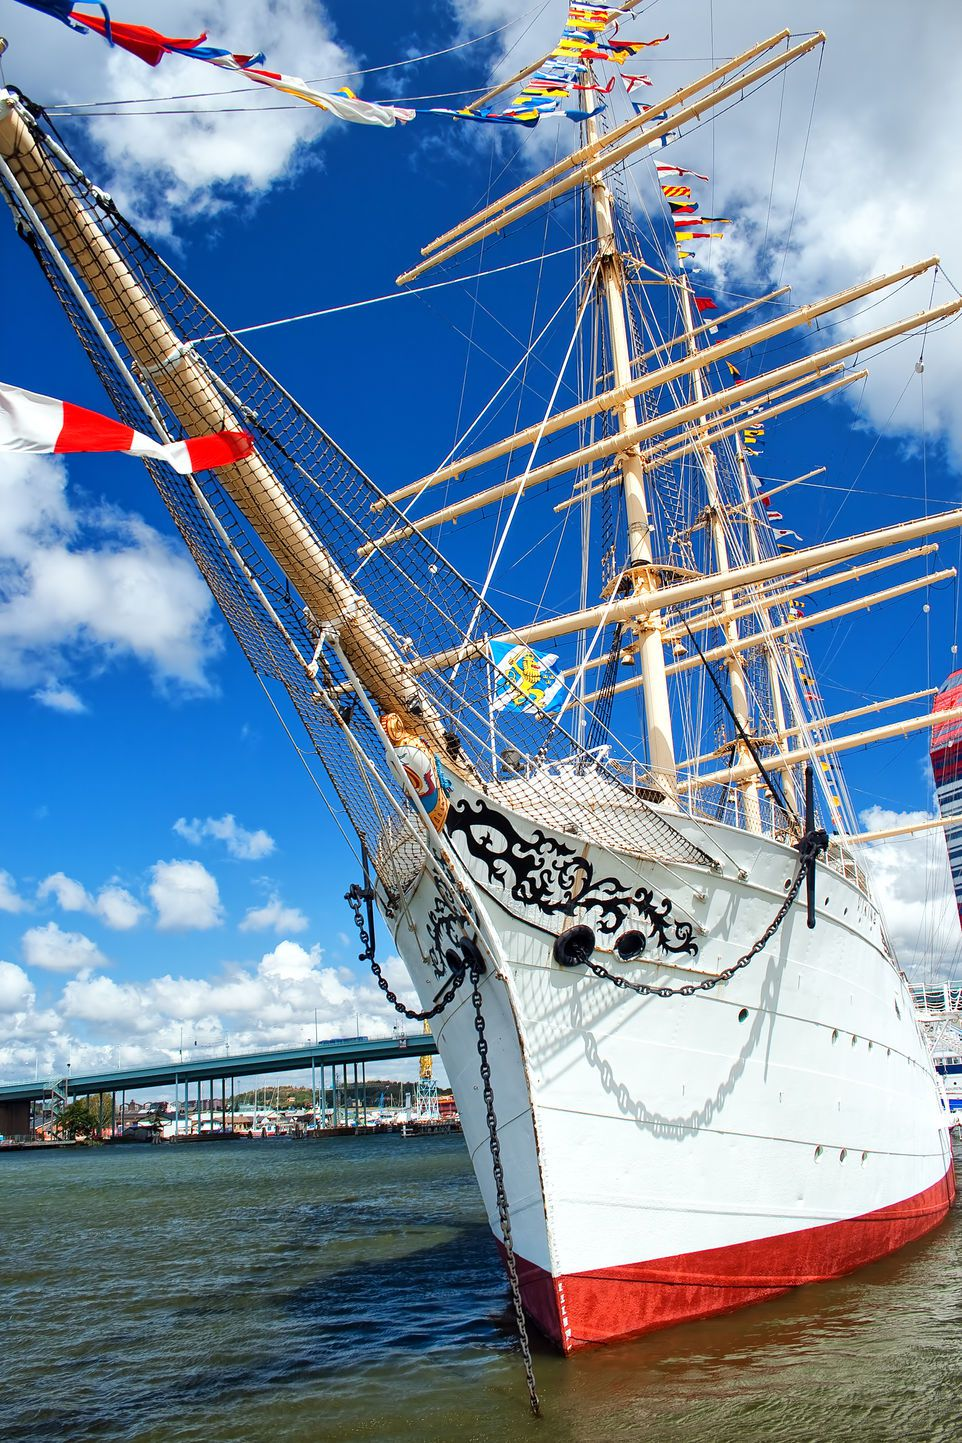 A Tall Ship Moored in the Harbor, Gothenburg, Sweden